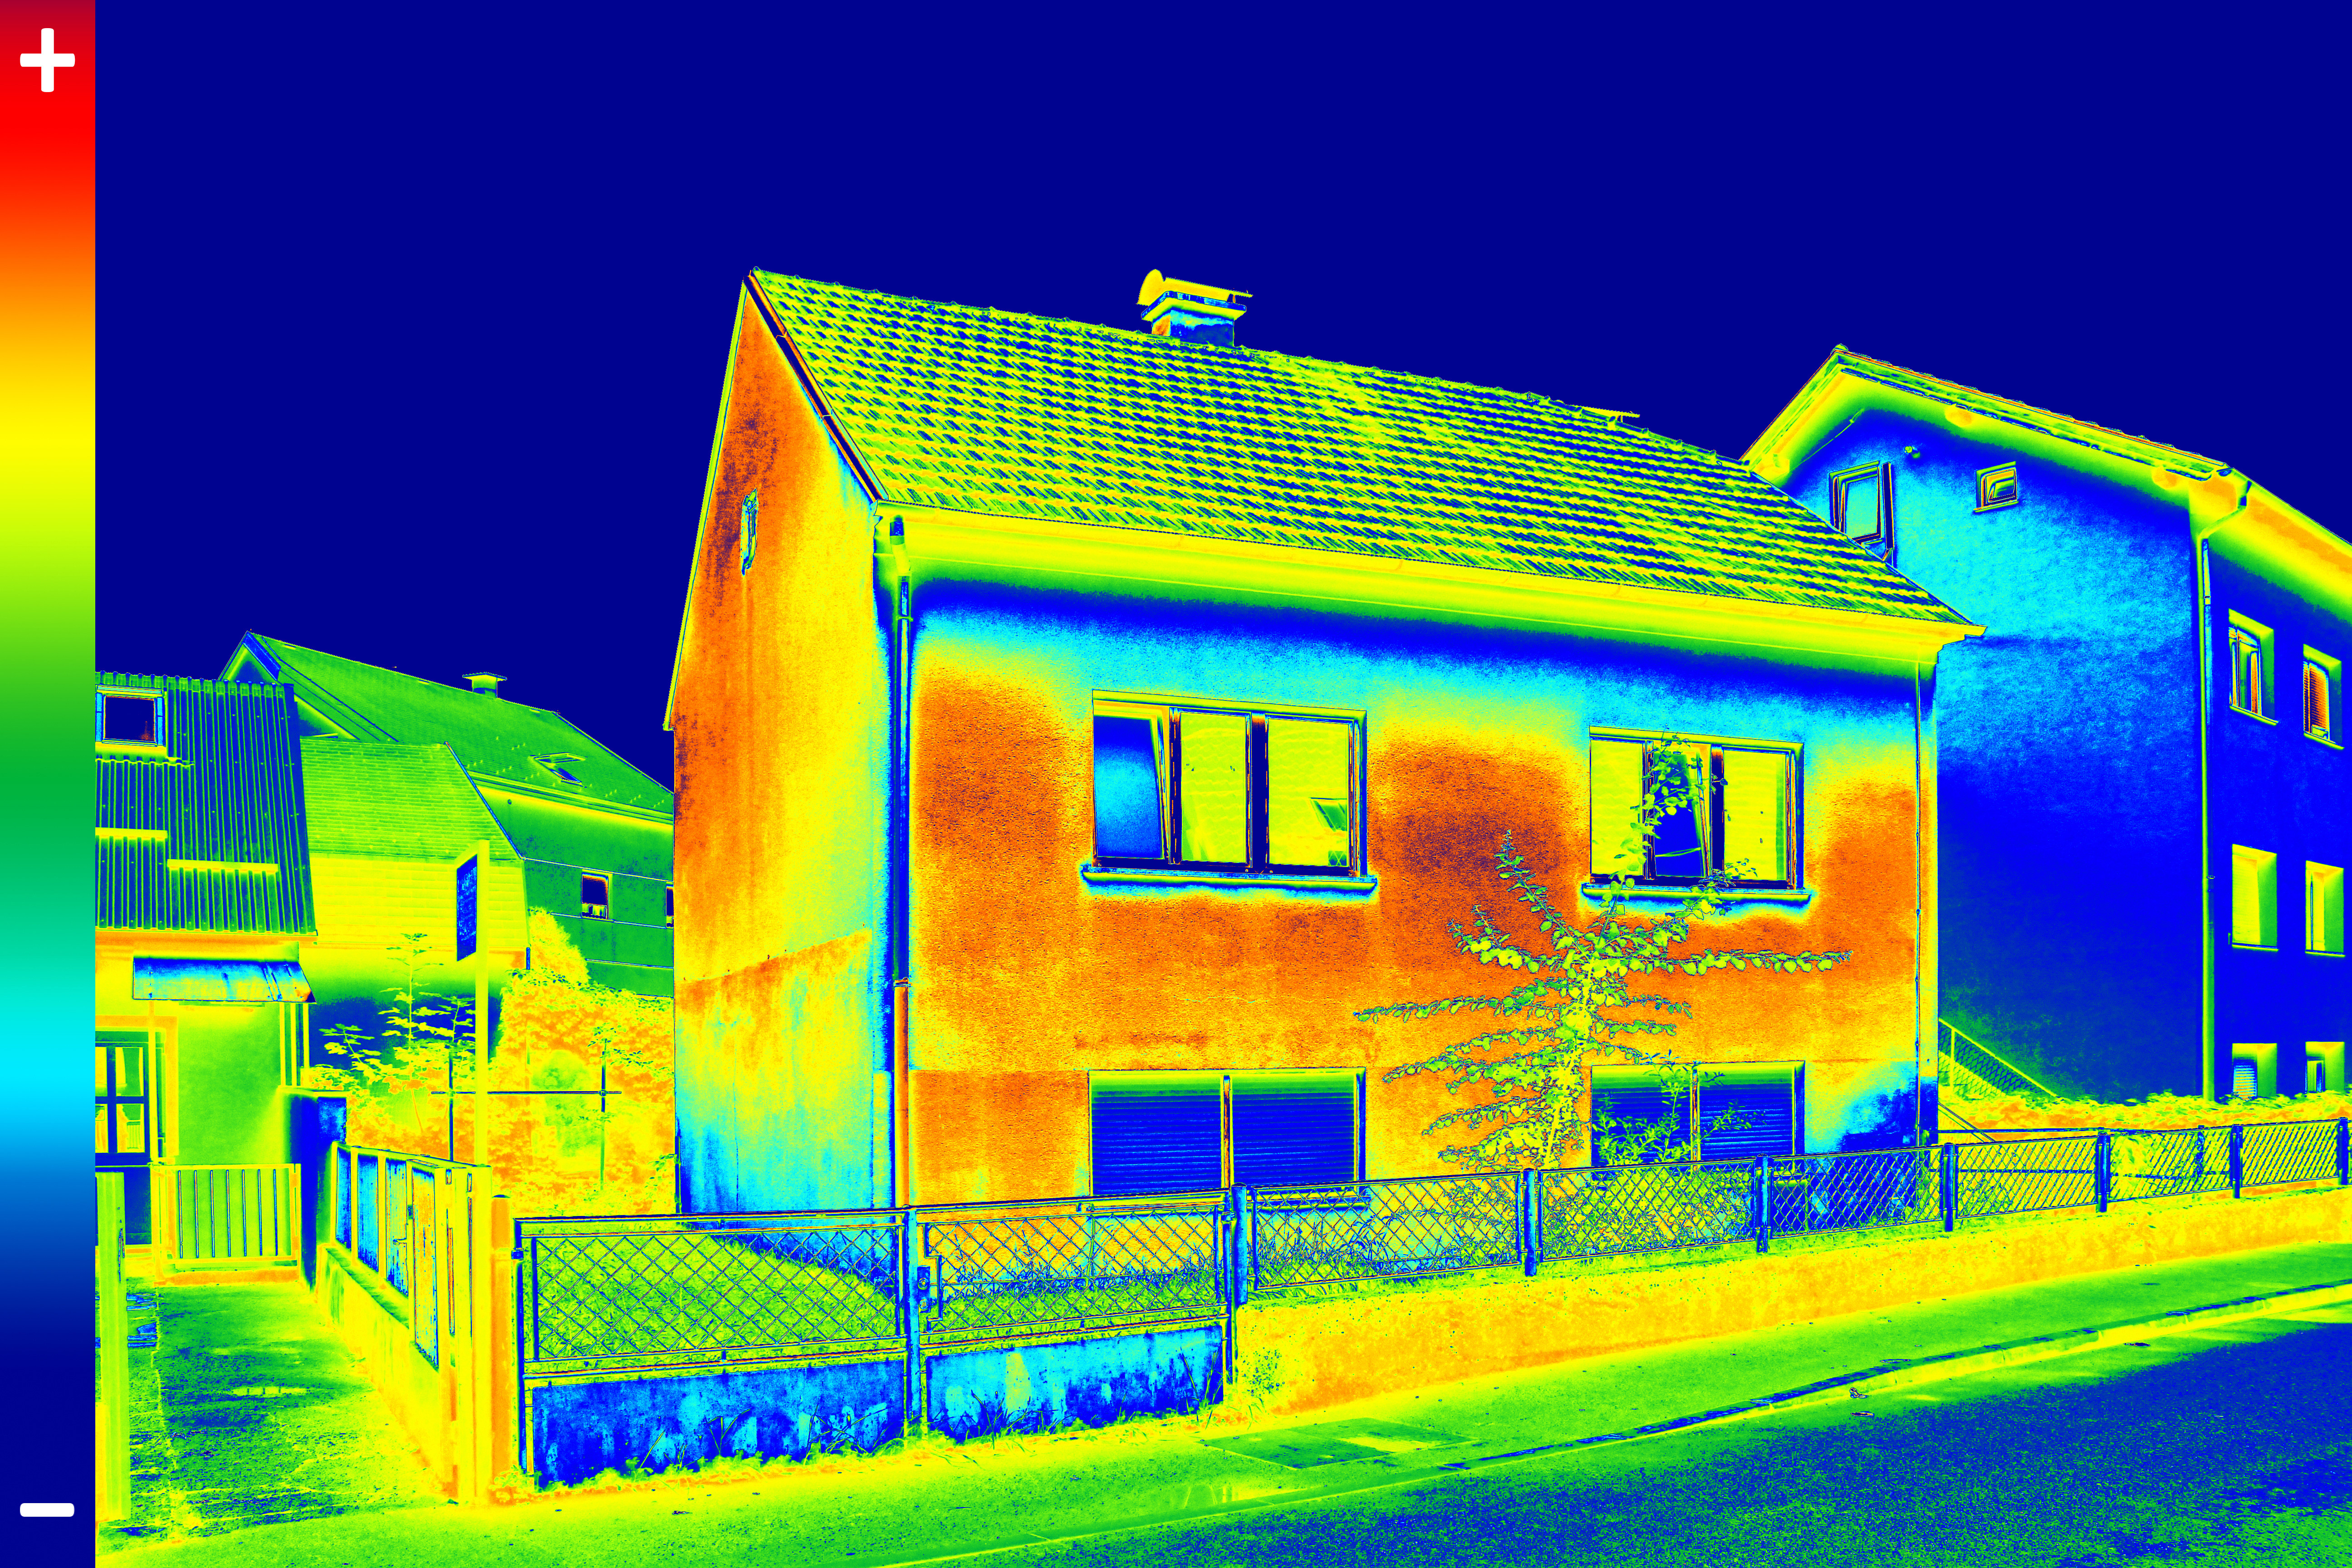 Thermography assisting WDO/WDI